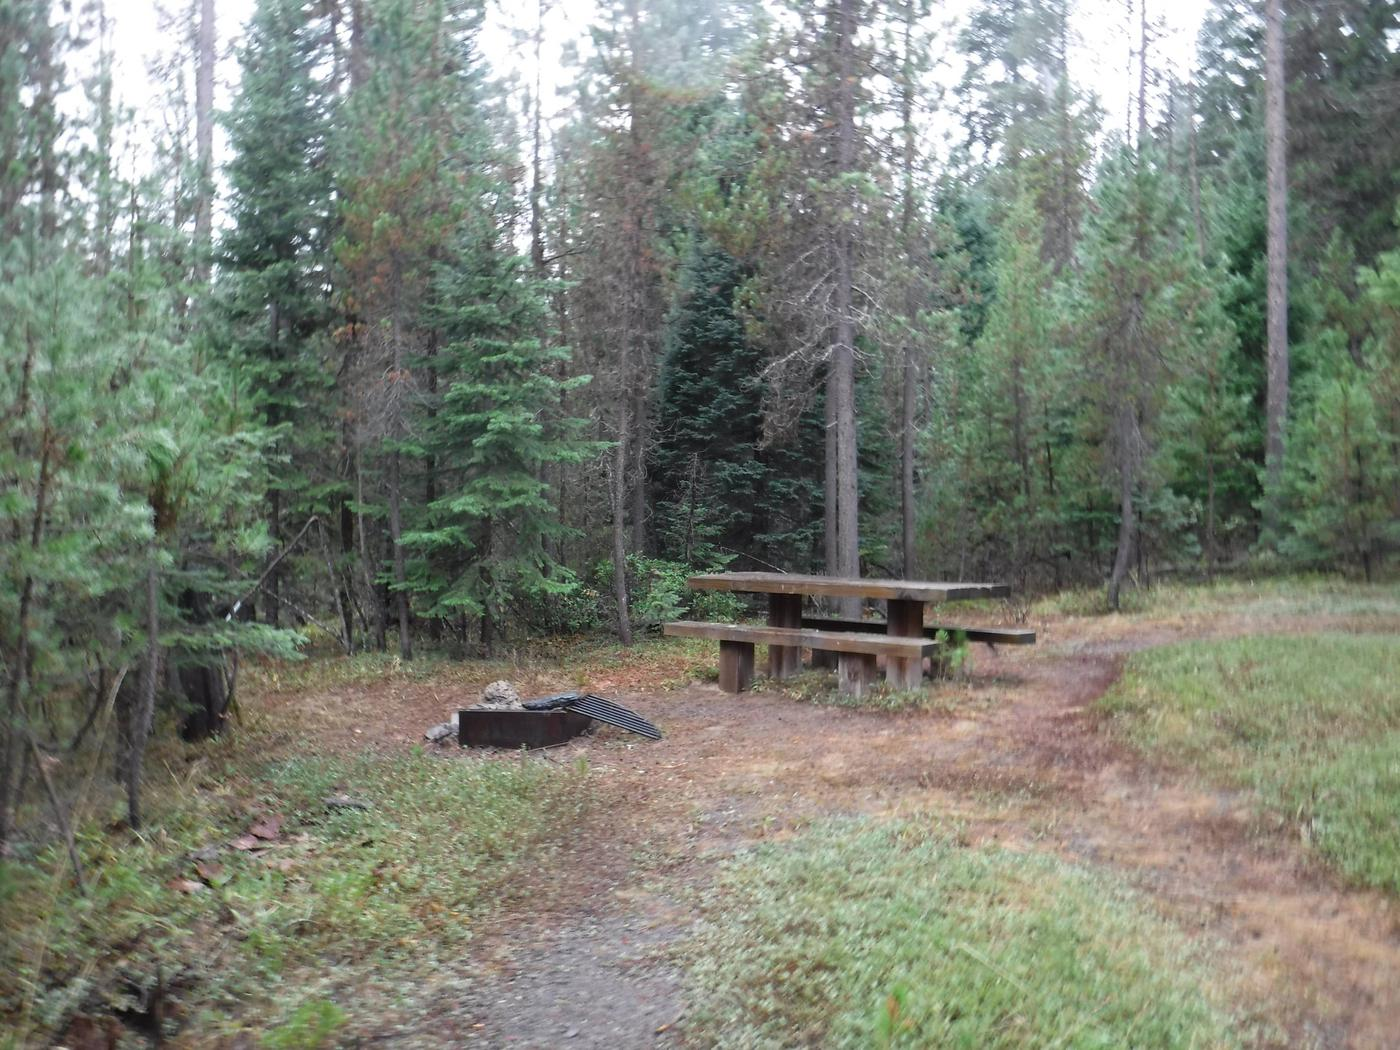 Flat campsite with one picnic table and fire ring.009